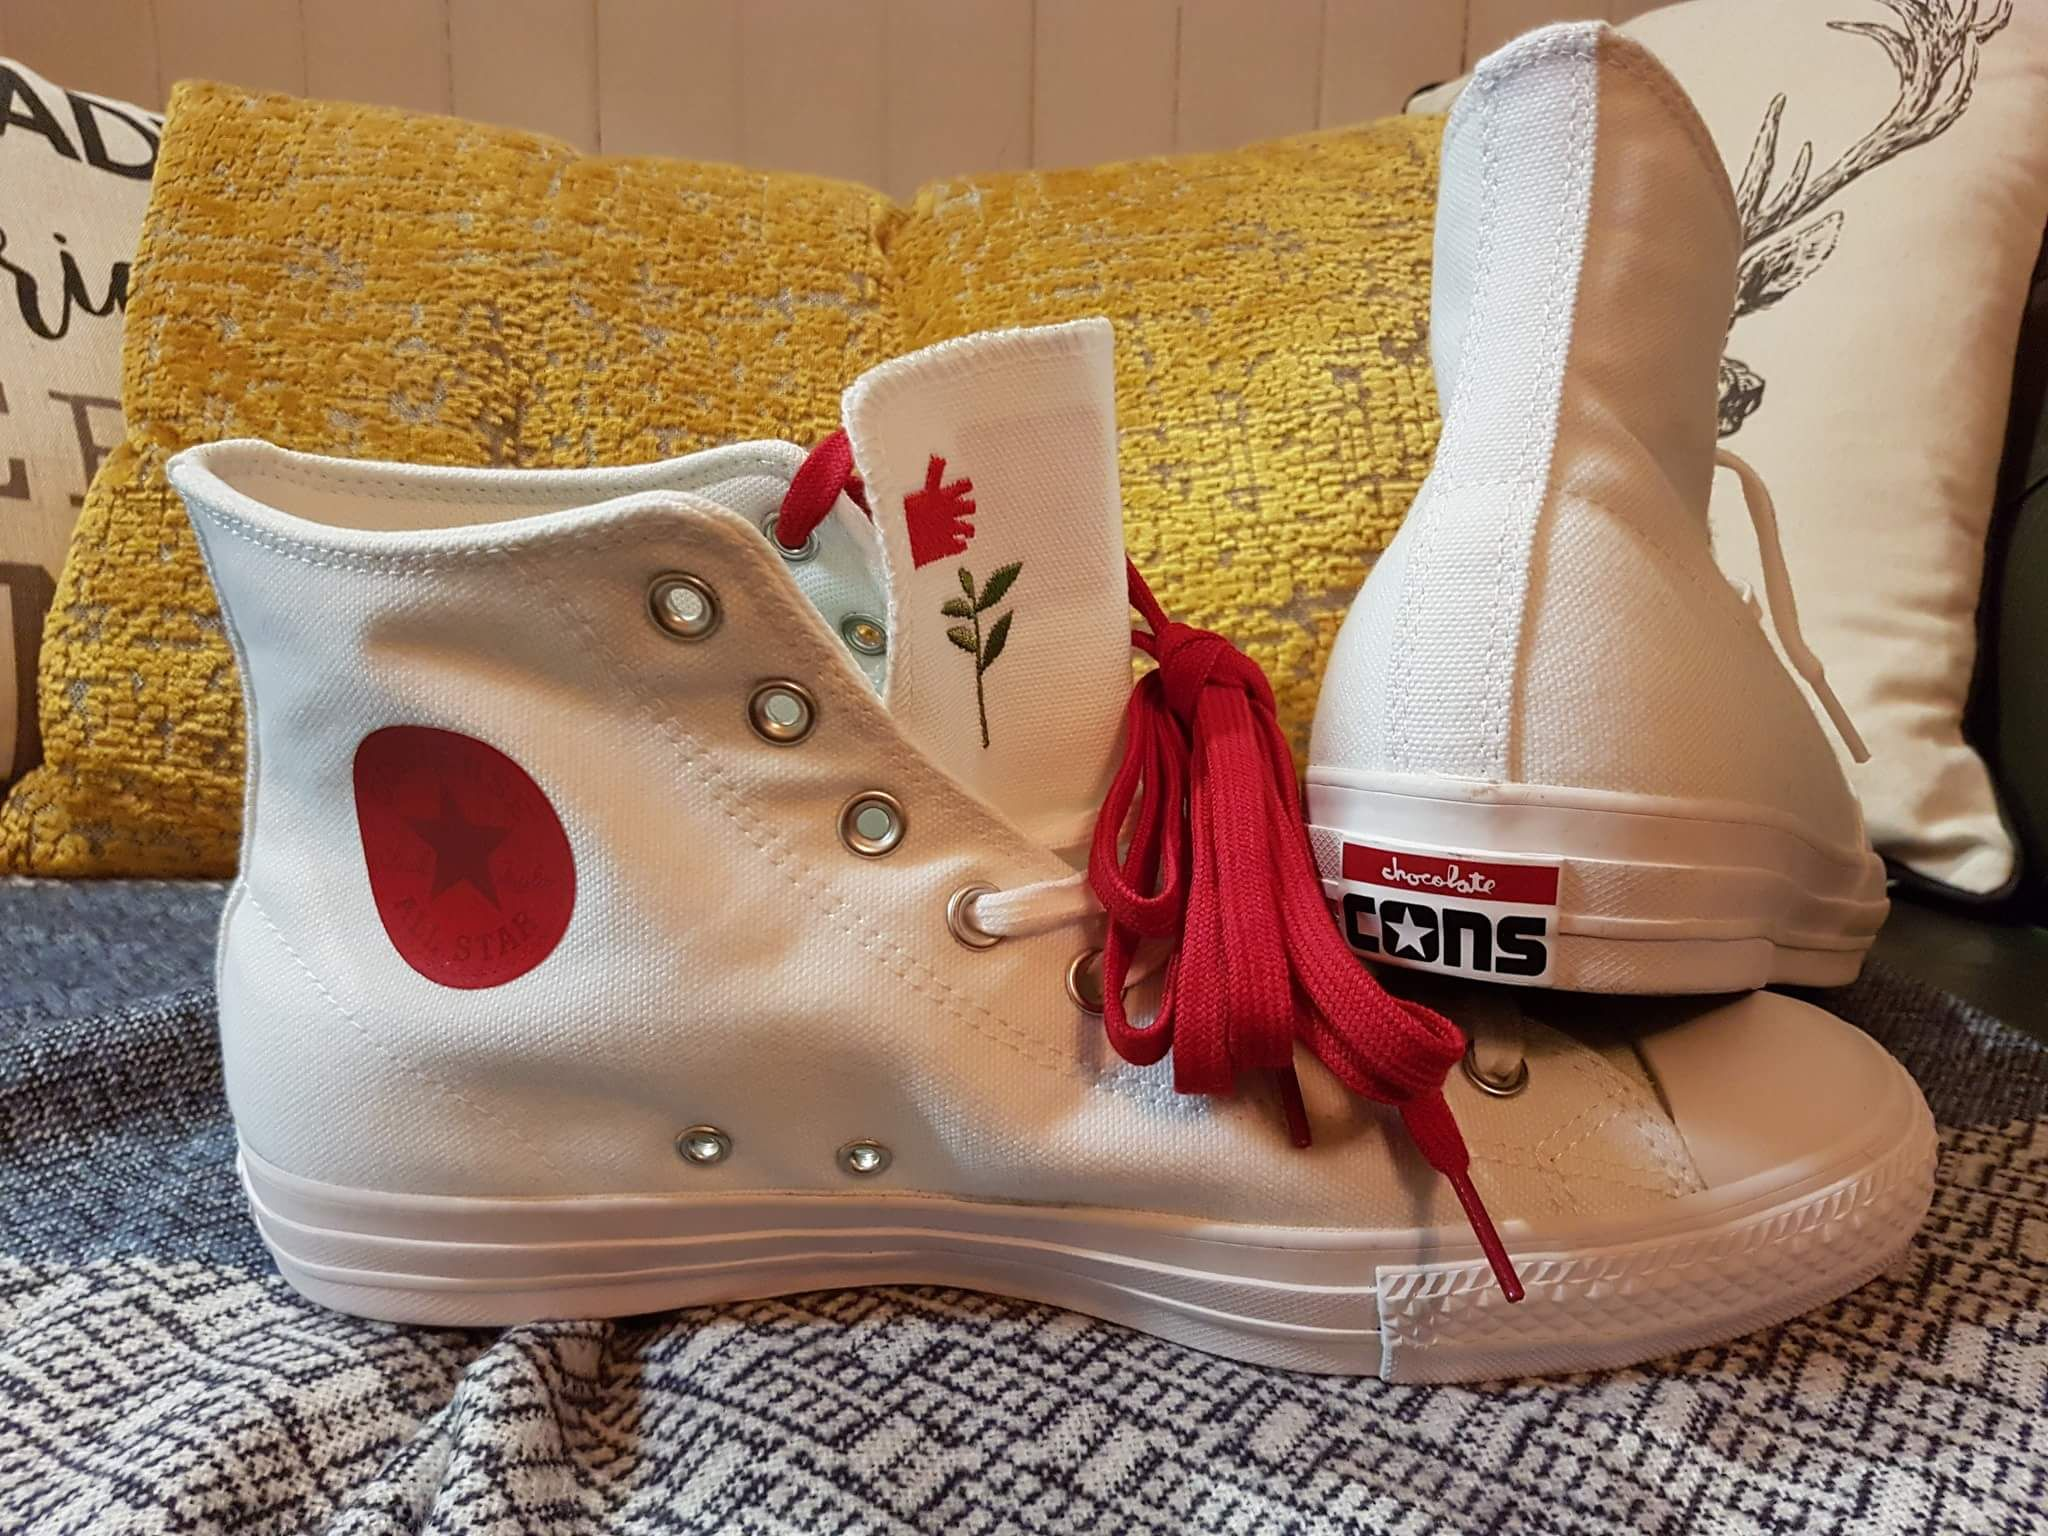 232f73de5a87 My new limited edition Converse x Chocolate Kenny Anderson CTAS Pro Hi  white cons http